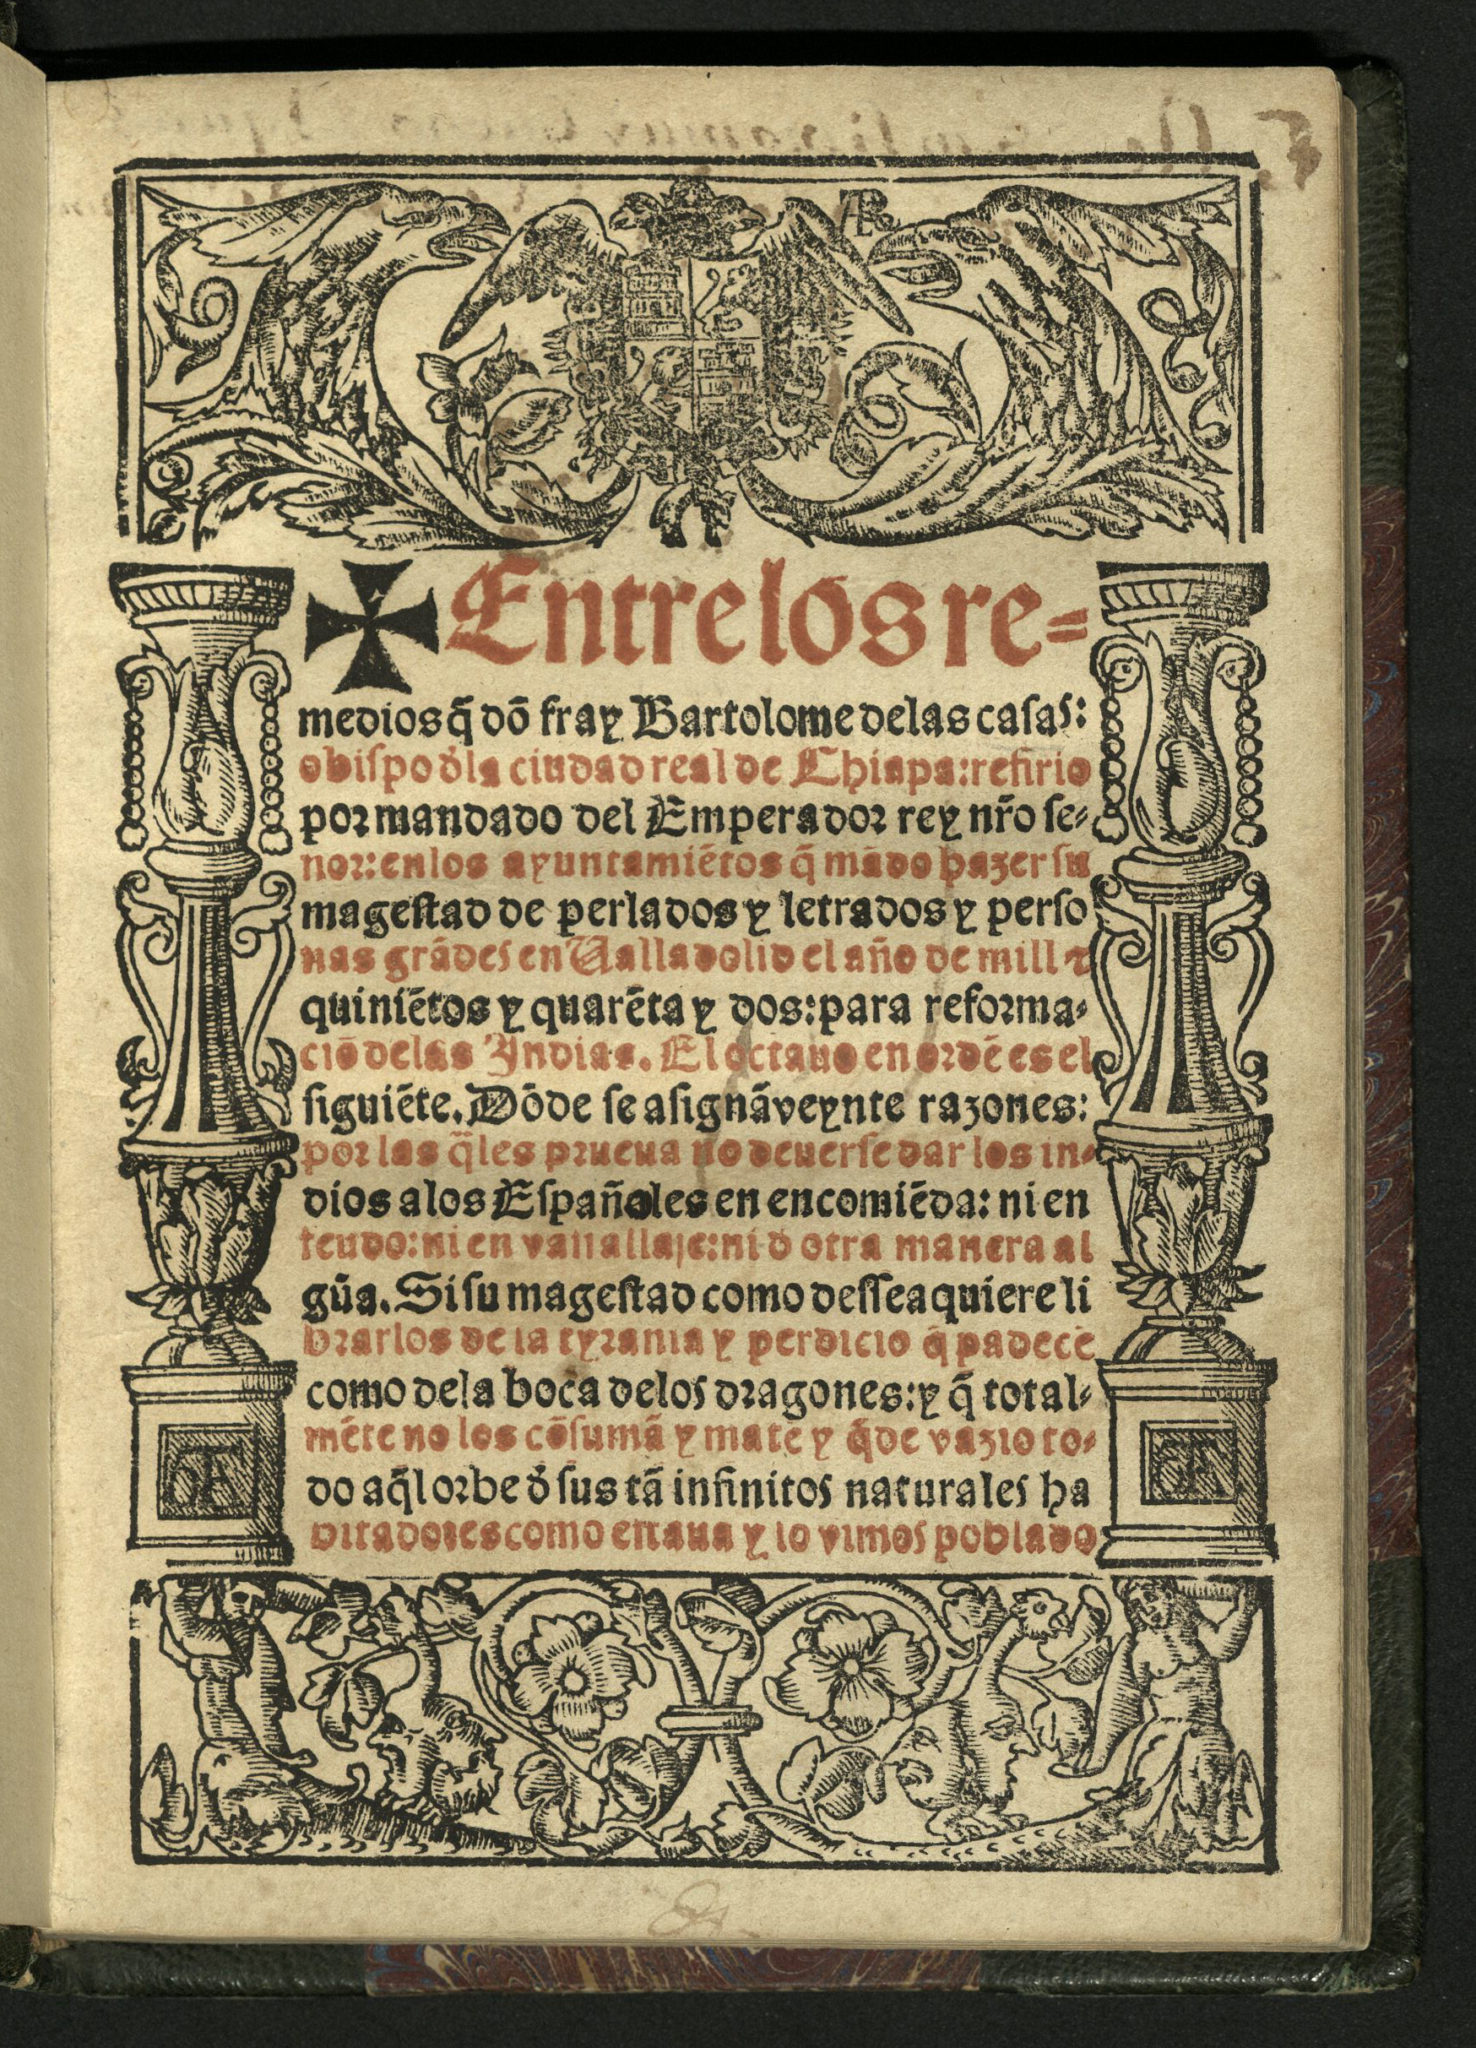 Title-page in red and black with ornate border surrounding text and including columns on either side